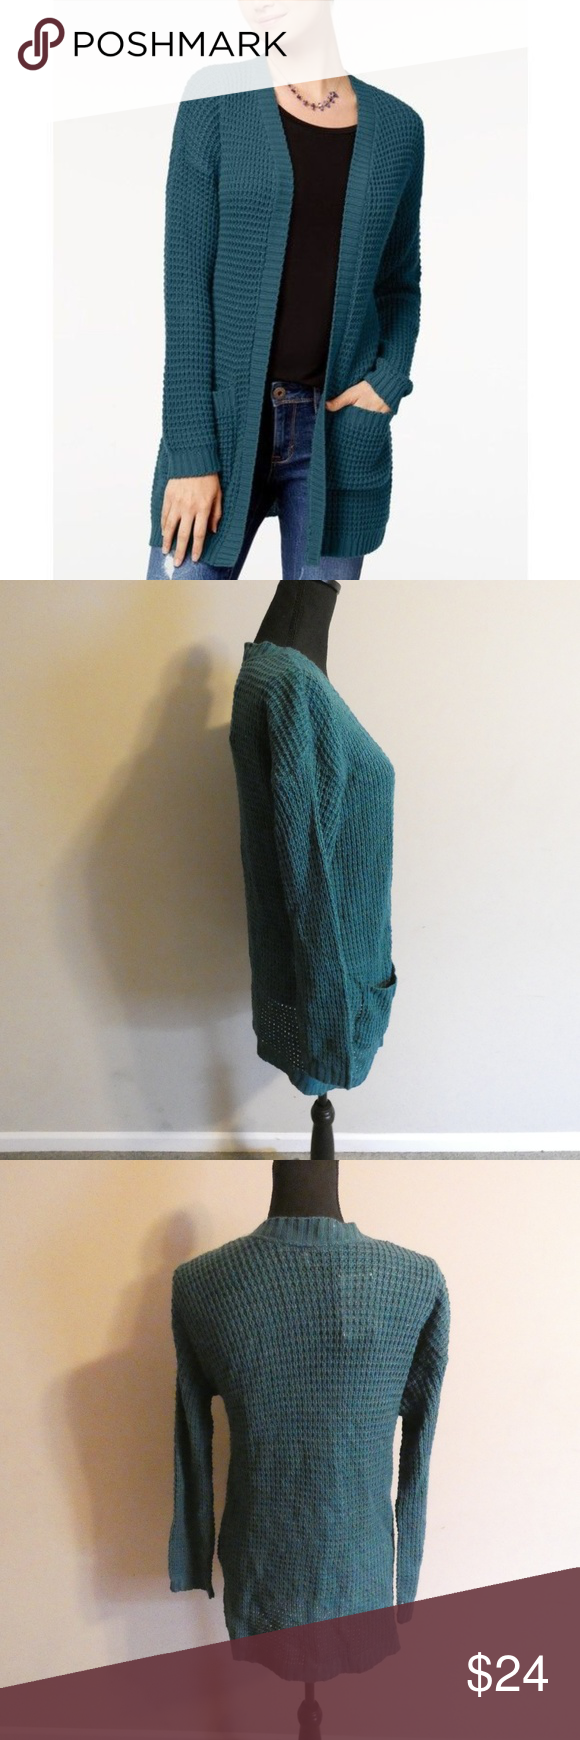 Green DropShoulder Cardigan Brand new with tag No closure